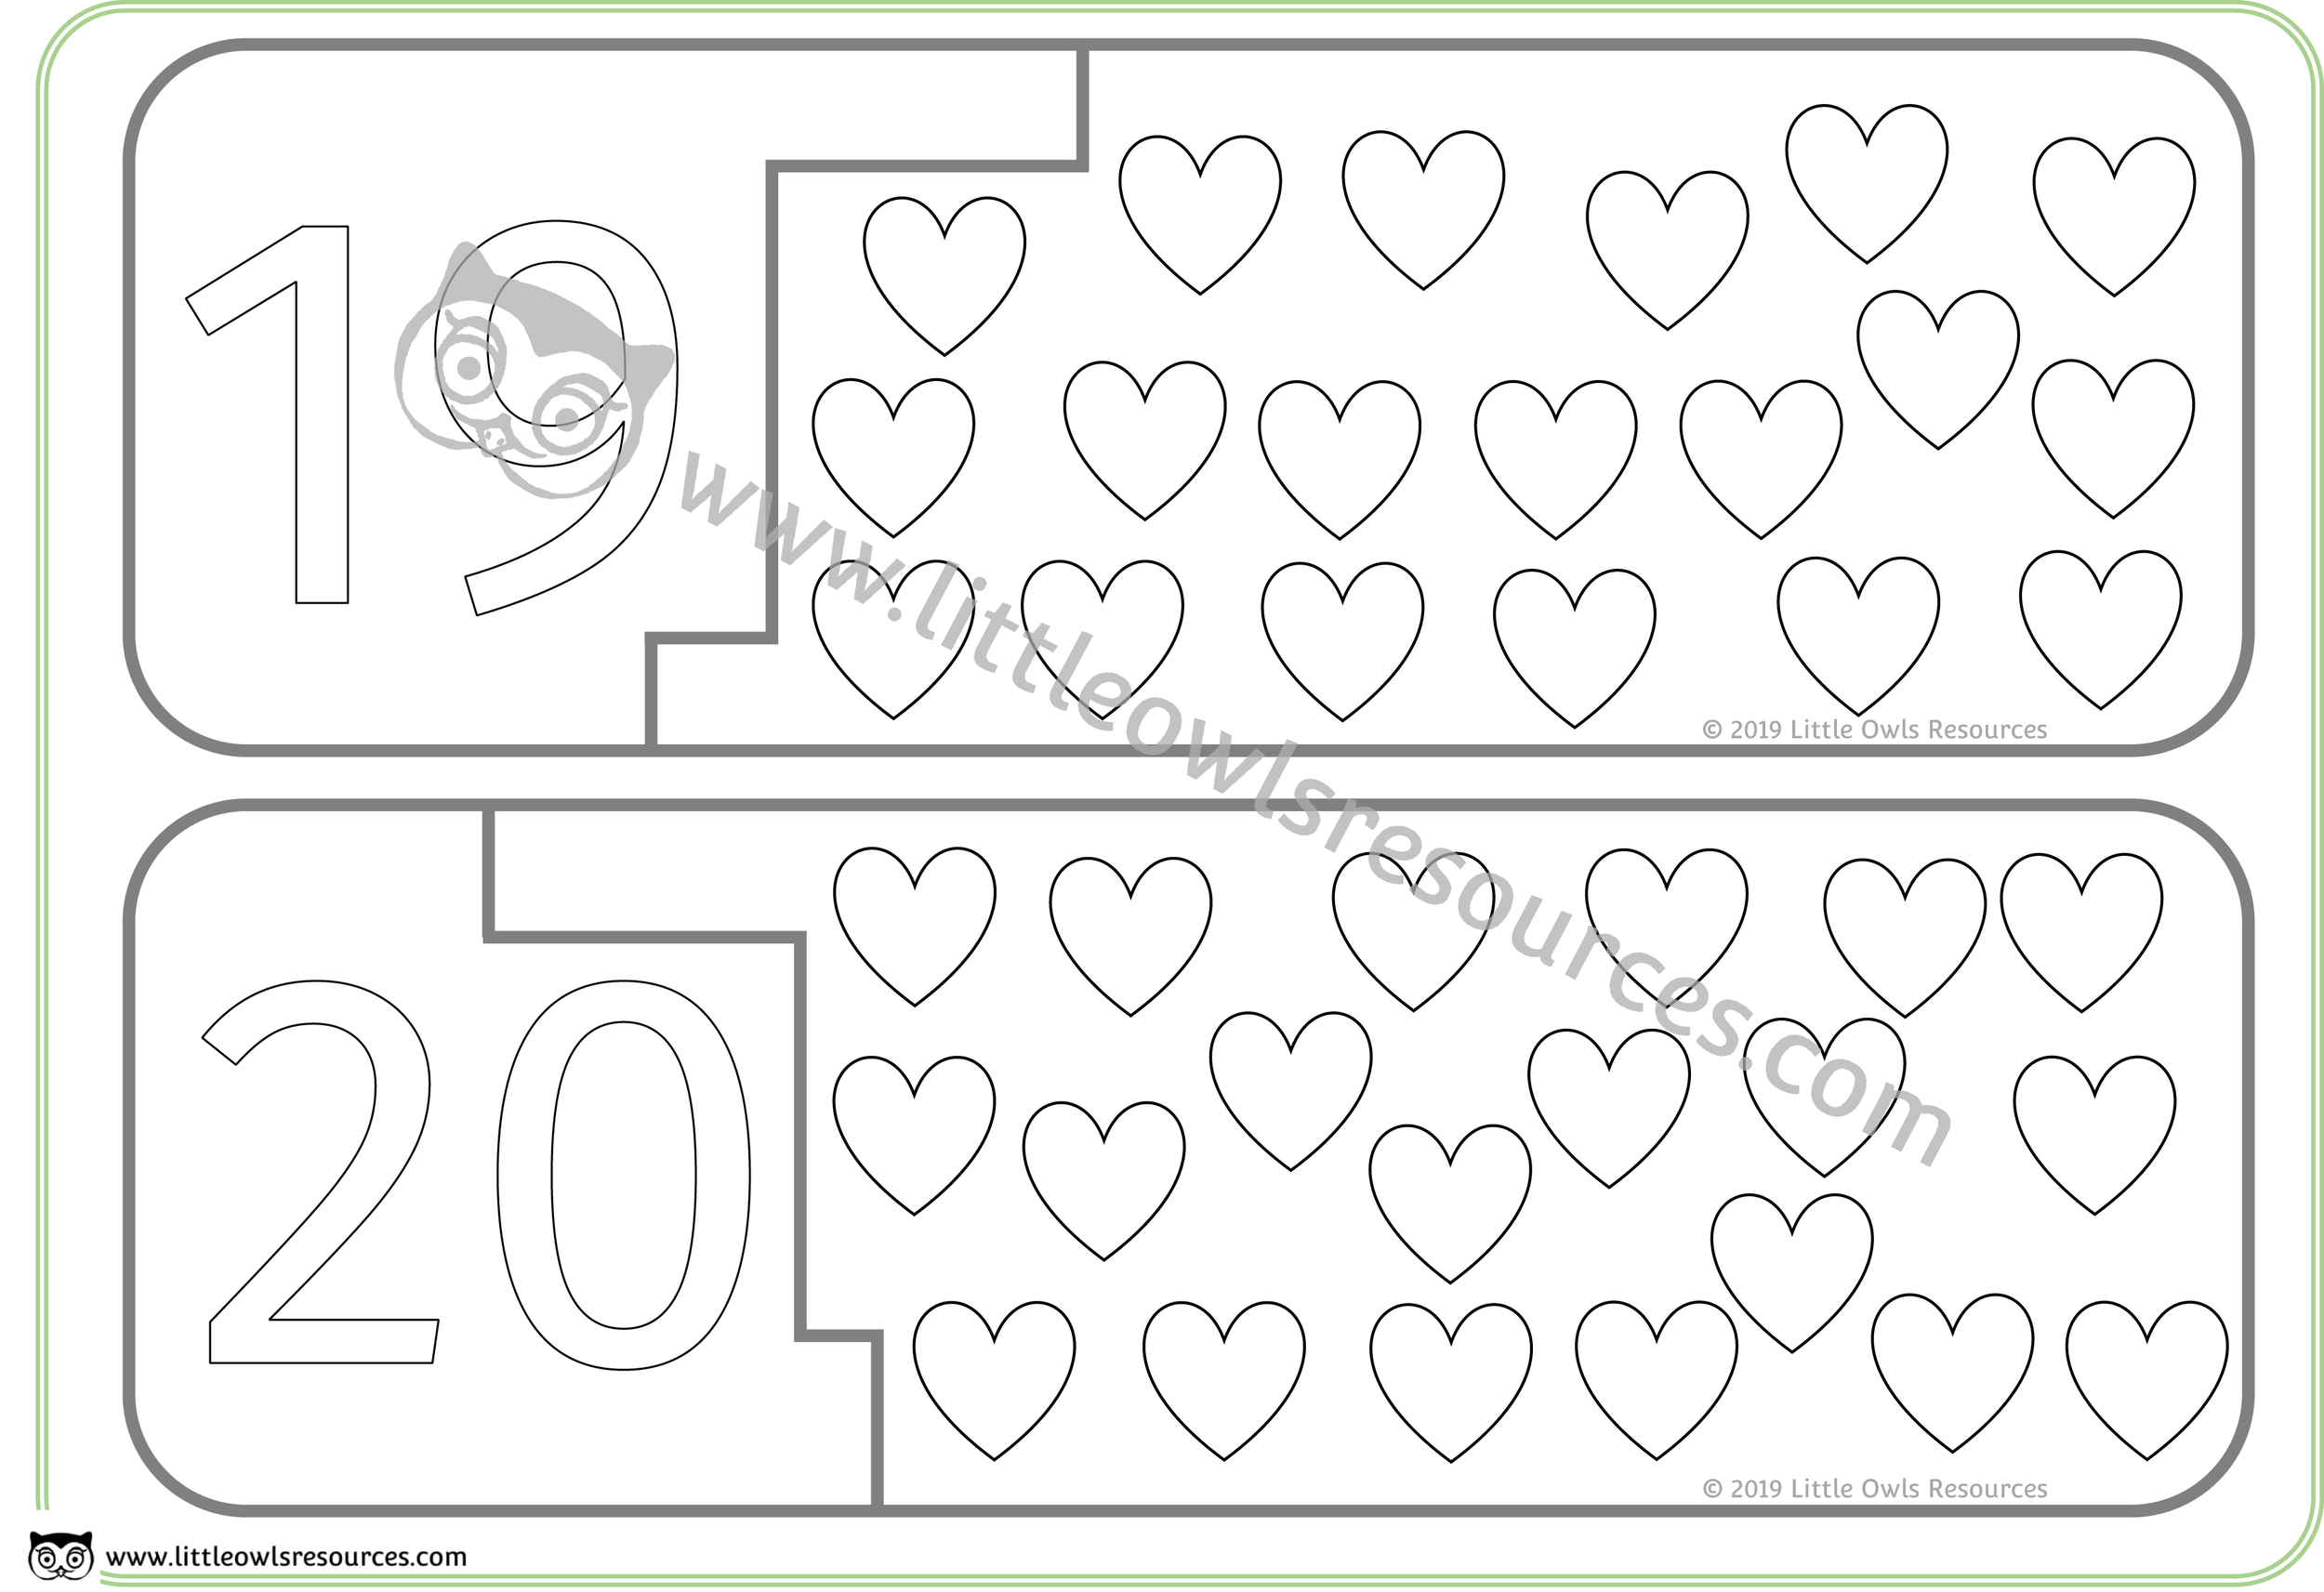 Count the Hearts Number Puzzles 19 & 20 -